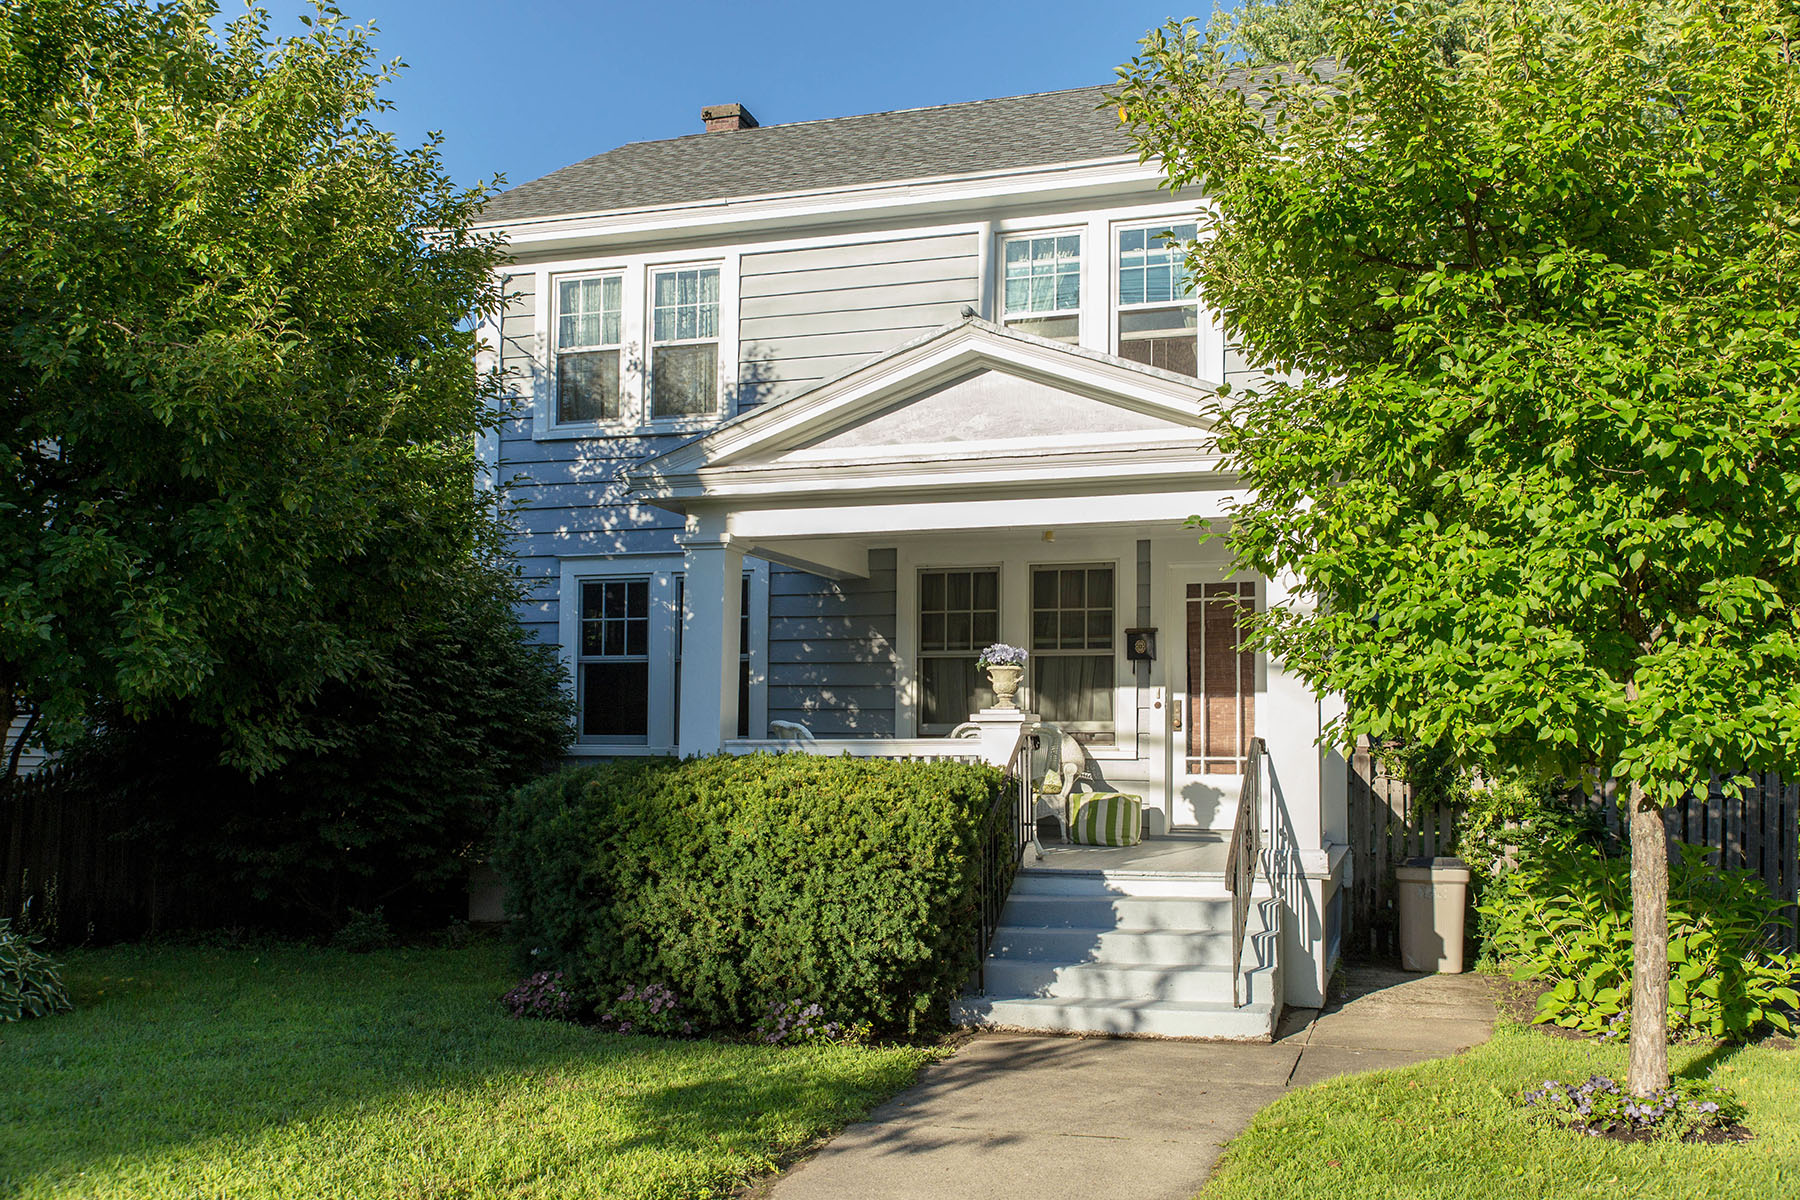 Single Family Home for Sale at East Side Saratoga Springs Home 200 East Av Saratoga Springs, New York 12866 United States